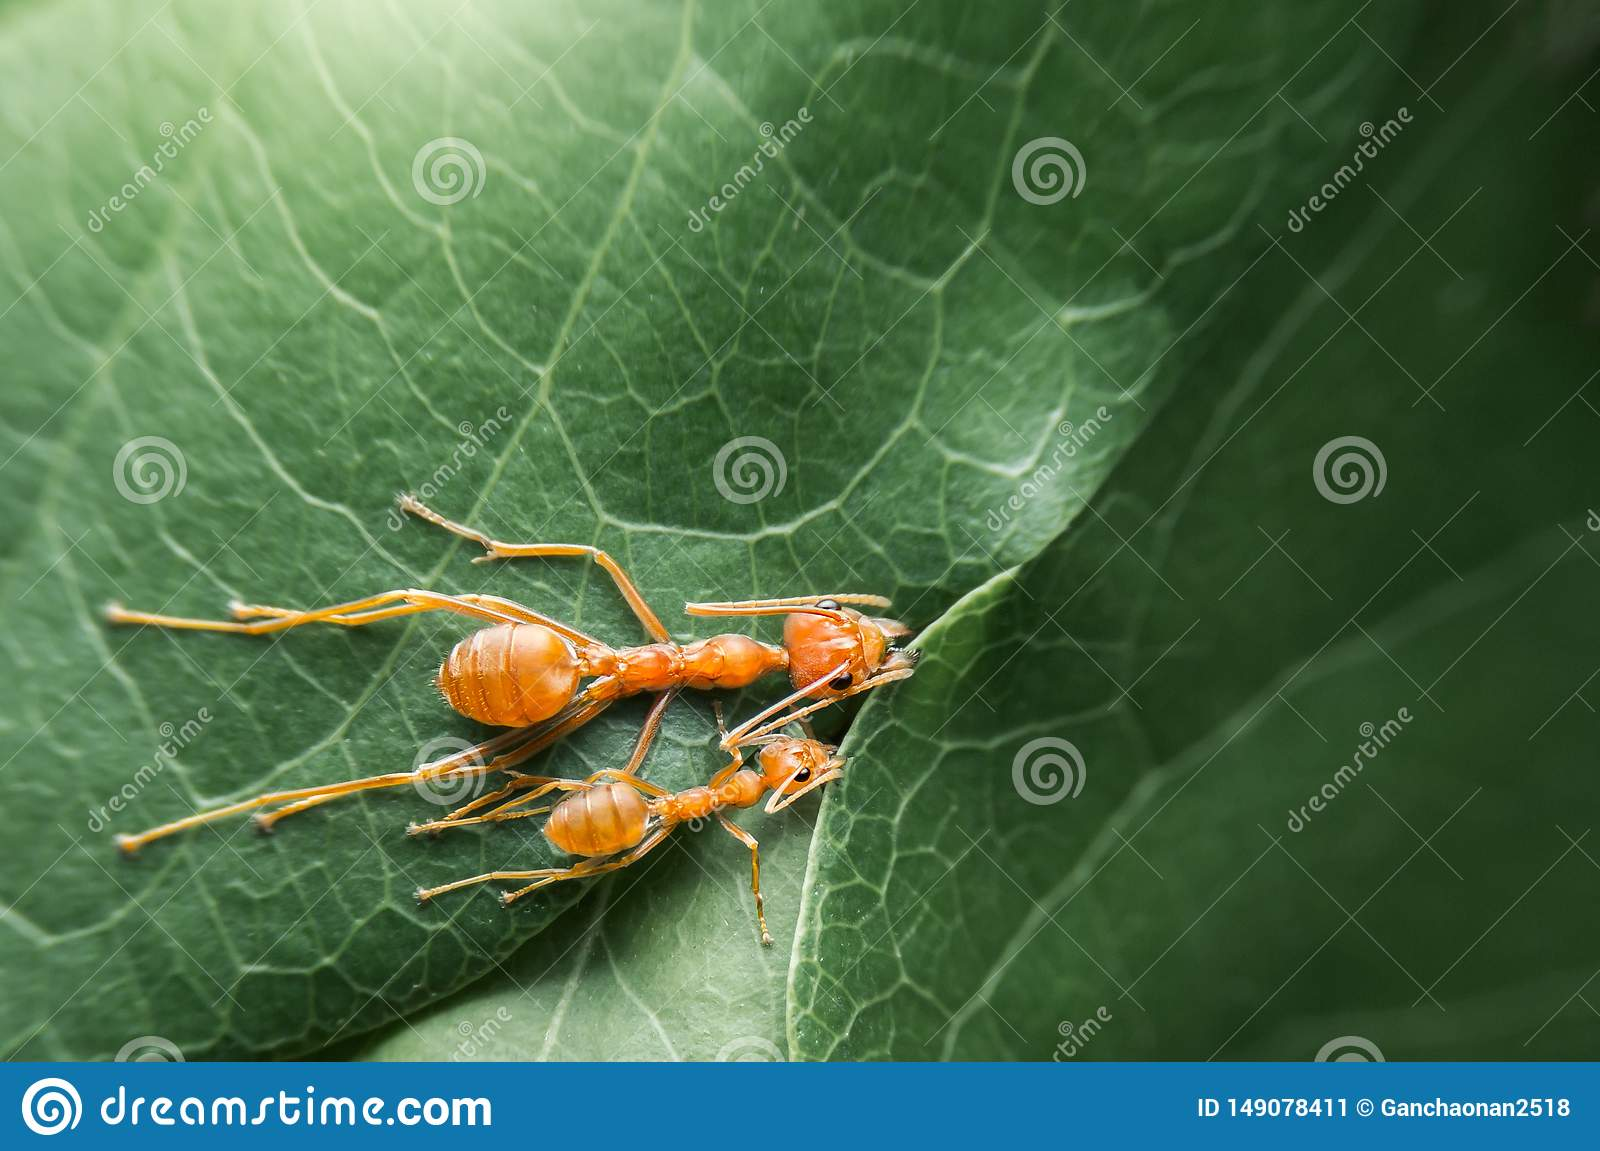 Top view selective focus team works red ants create their nest by green tree leaf with nature background